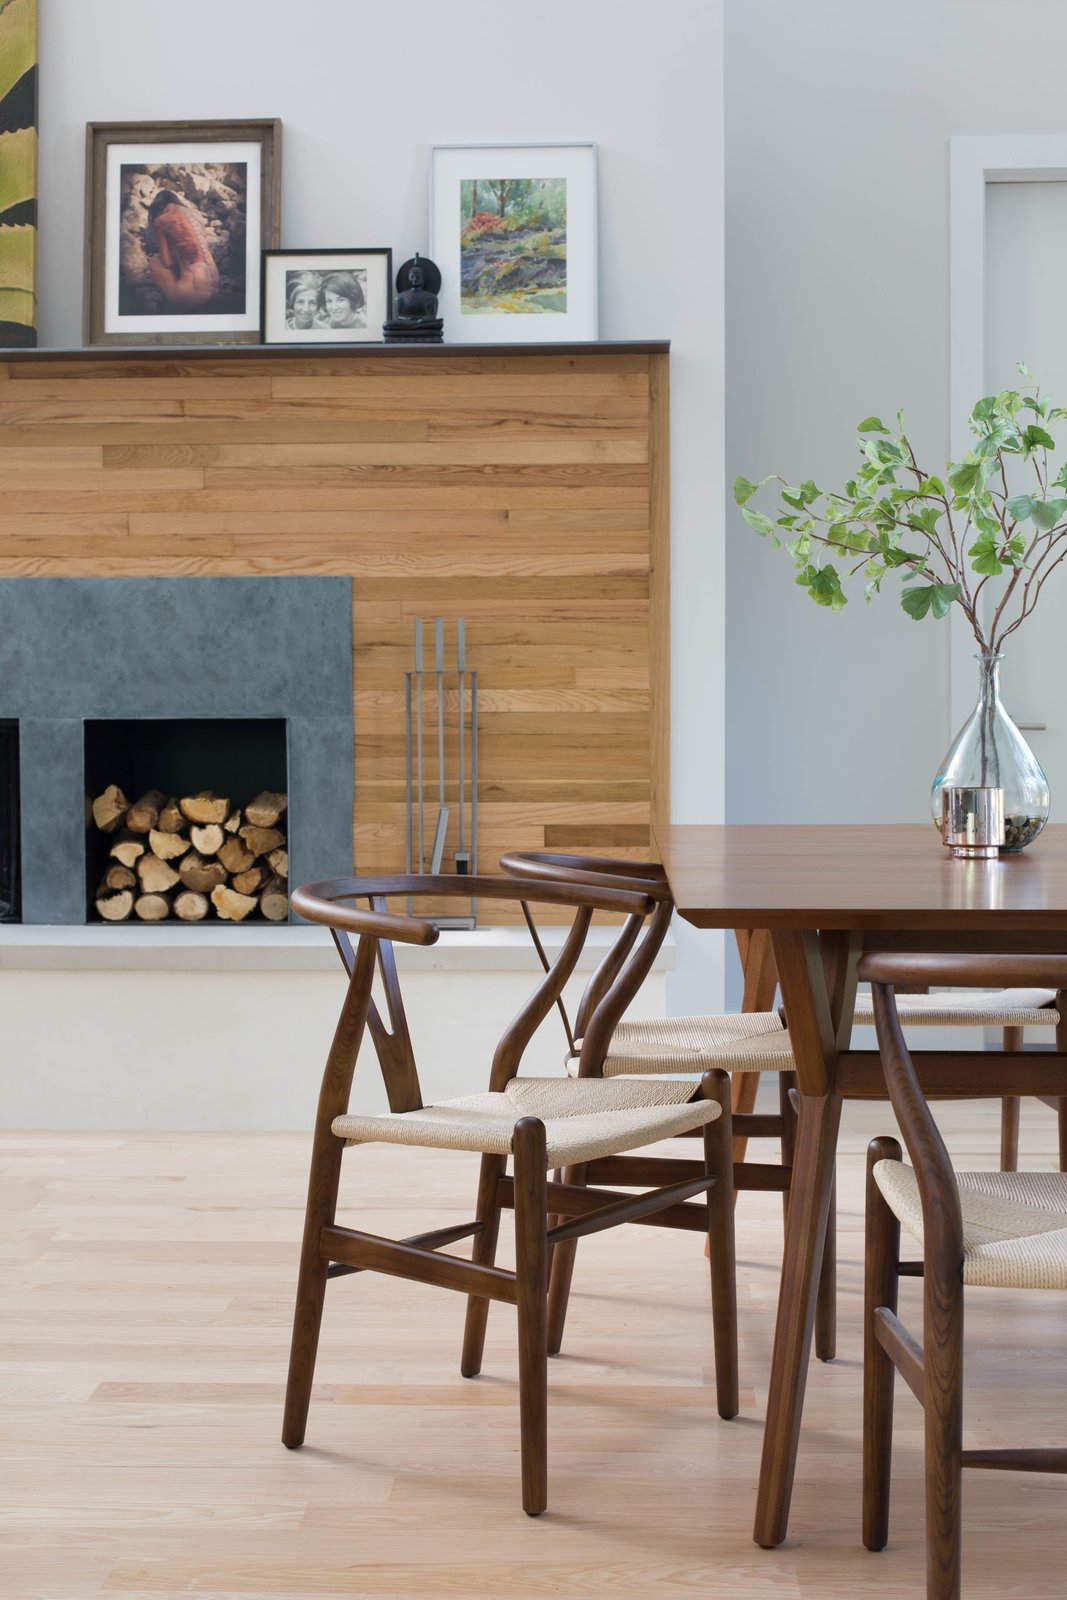 The wood used on the fireplace wall was salvaged from the floor of the old home that the Architect and her husband lived in before eventually deciding to build a new home in its place. It was painstakingly salvaged, sorted, stripped, cut, and re-stained before finding new life as a wall finish.  Photo 4 of 8 in Q&A With an Architect About What it's Like to Design Your Own Home